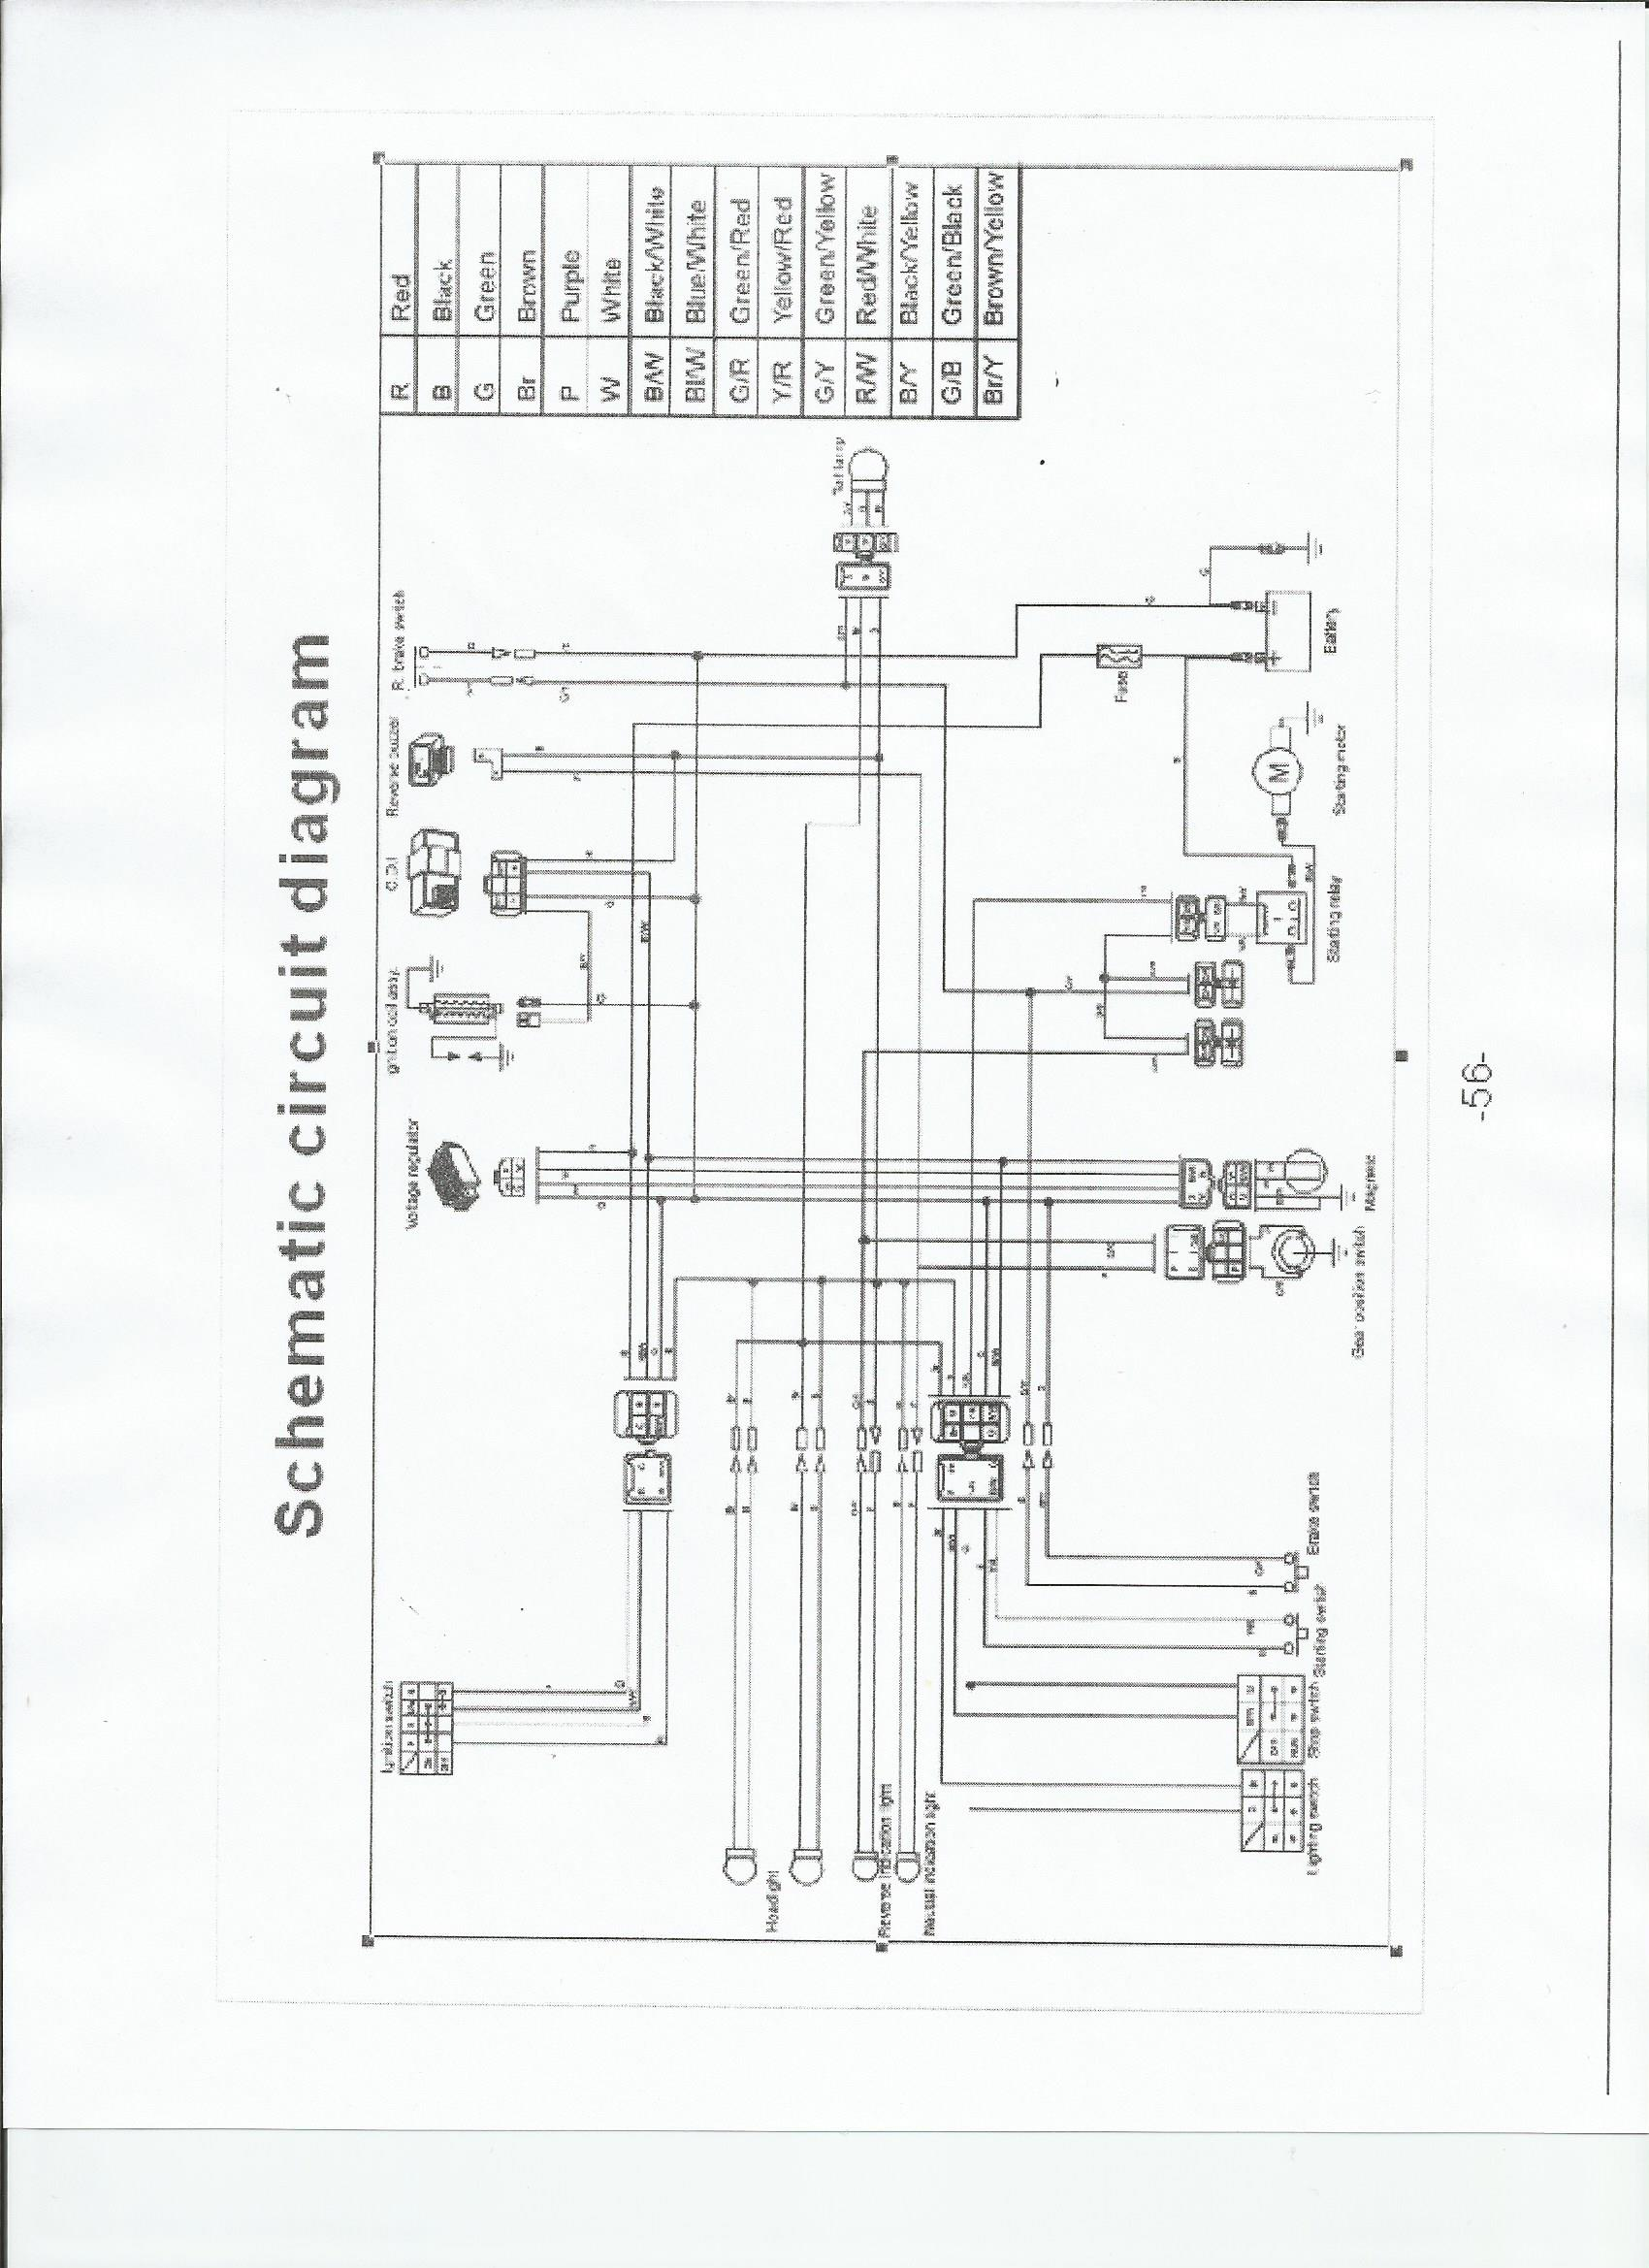 taotao mini and youth atv wiring schematic \u2013 familygokarts support Tao Tao 110 ATV Parts Diagram tao tao wiring schematic jpg